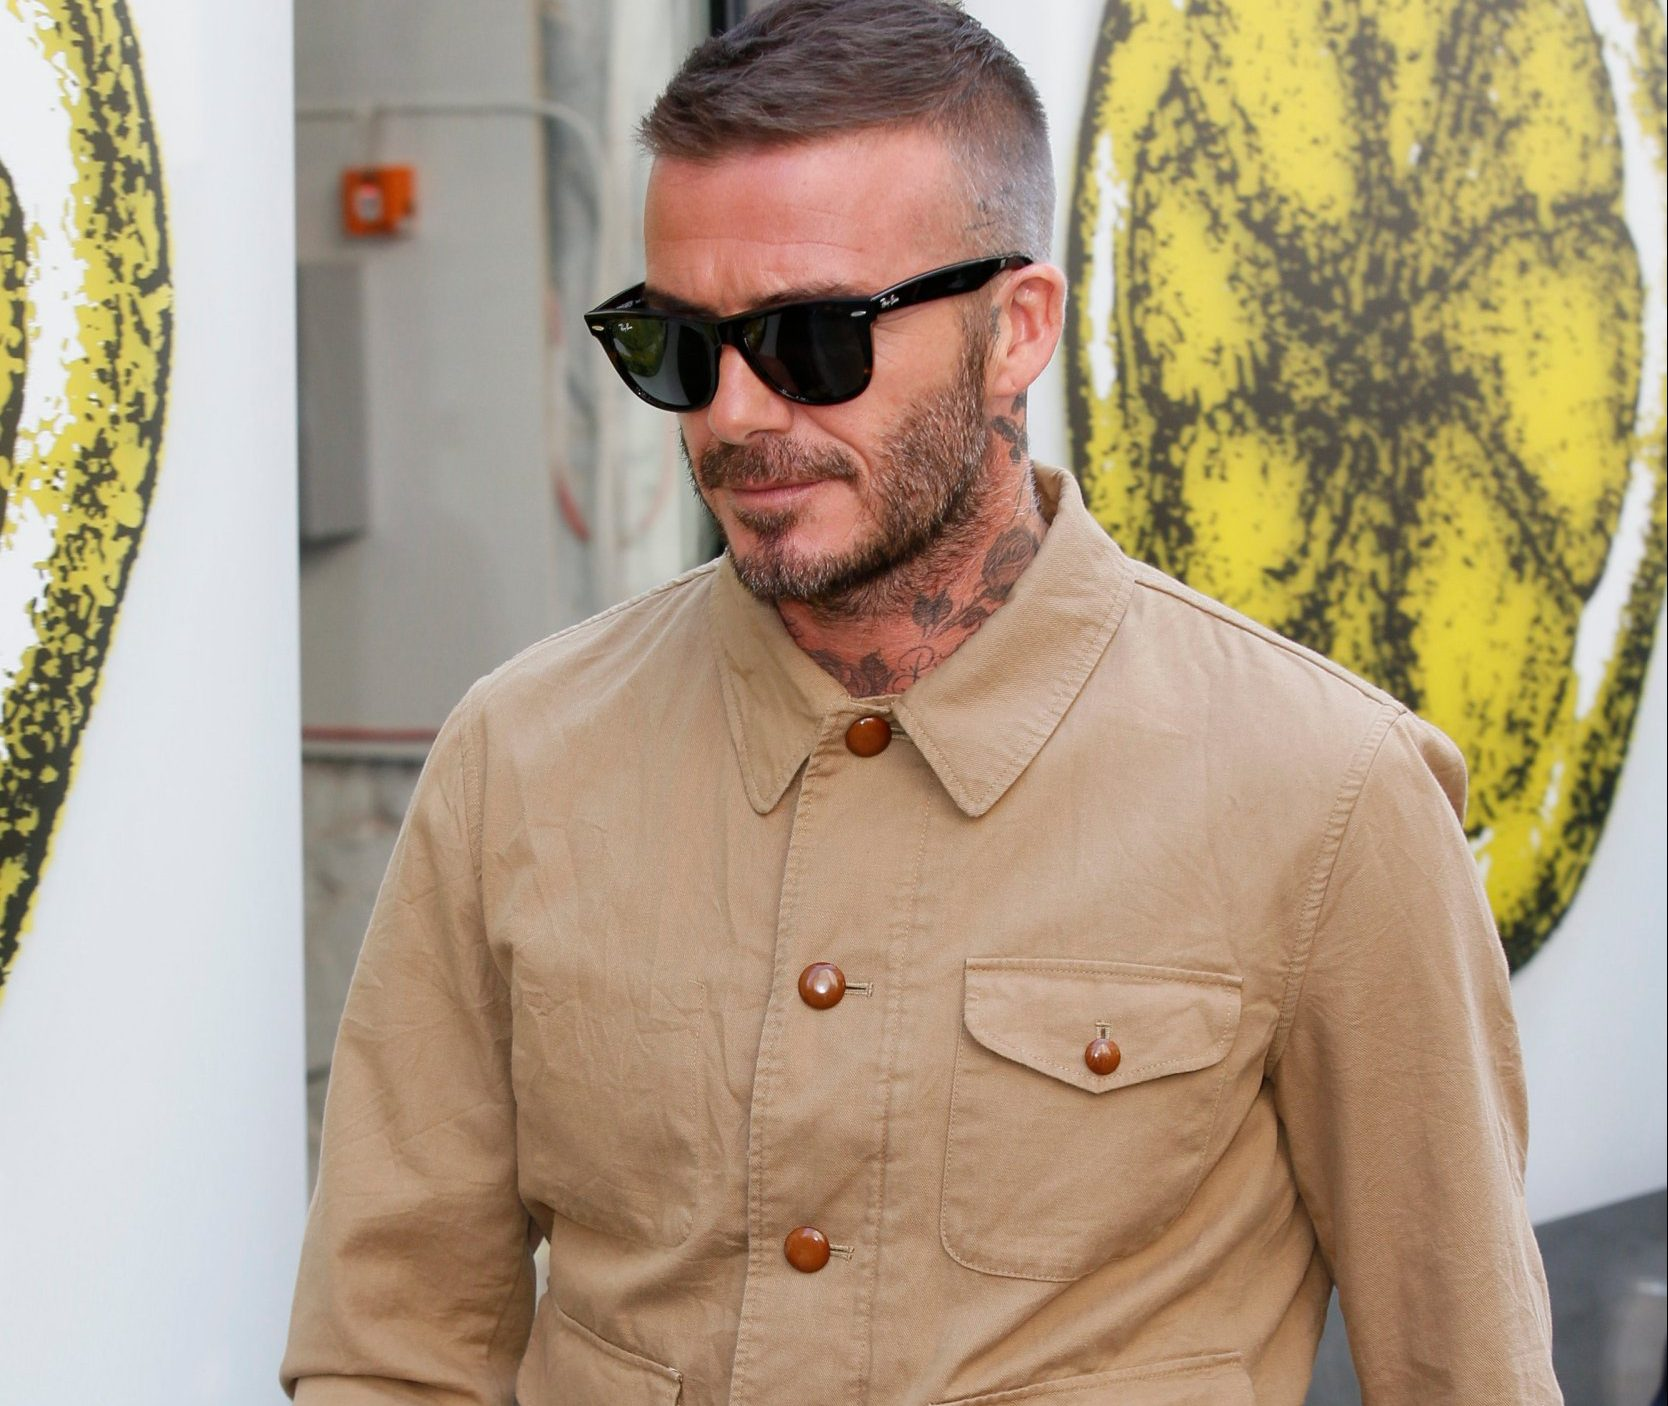 LFW Men's s/s 2019: Kent and Curwen - Catwalk and Front Row Featuring: David Beckham Where: London, United Kingdom When: 10 Jun 2018 Credit: Mario Mitsis/WENN.com